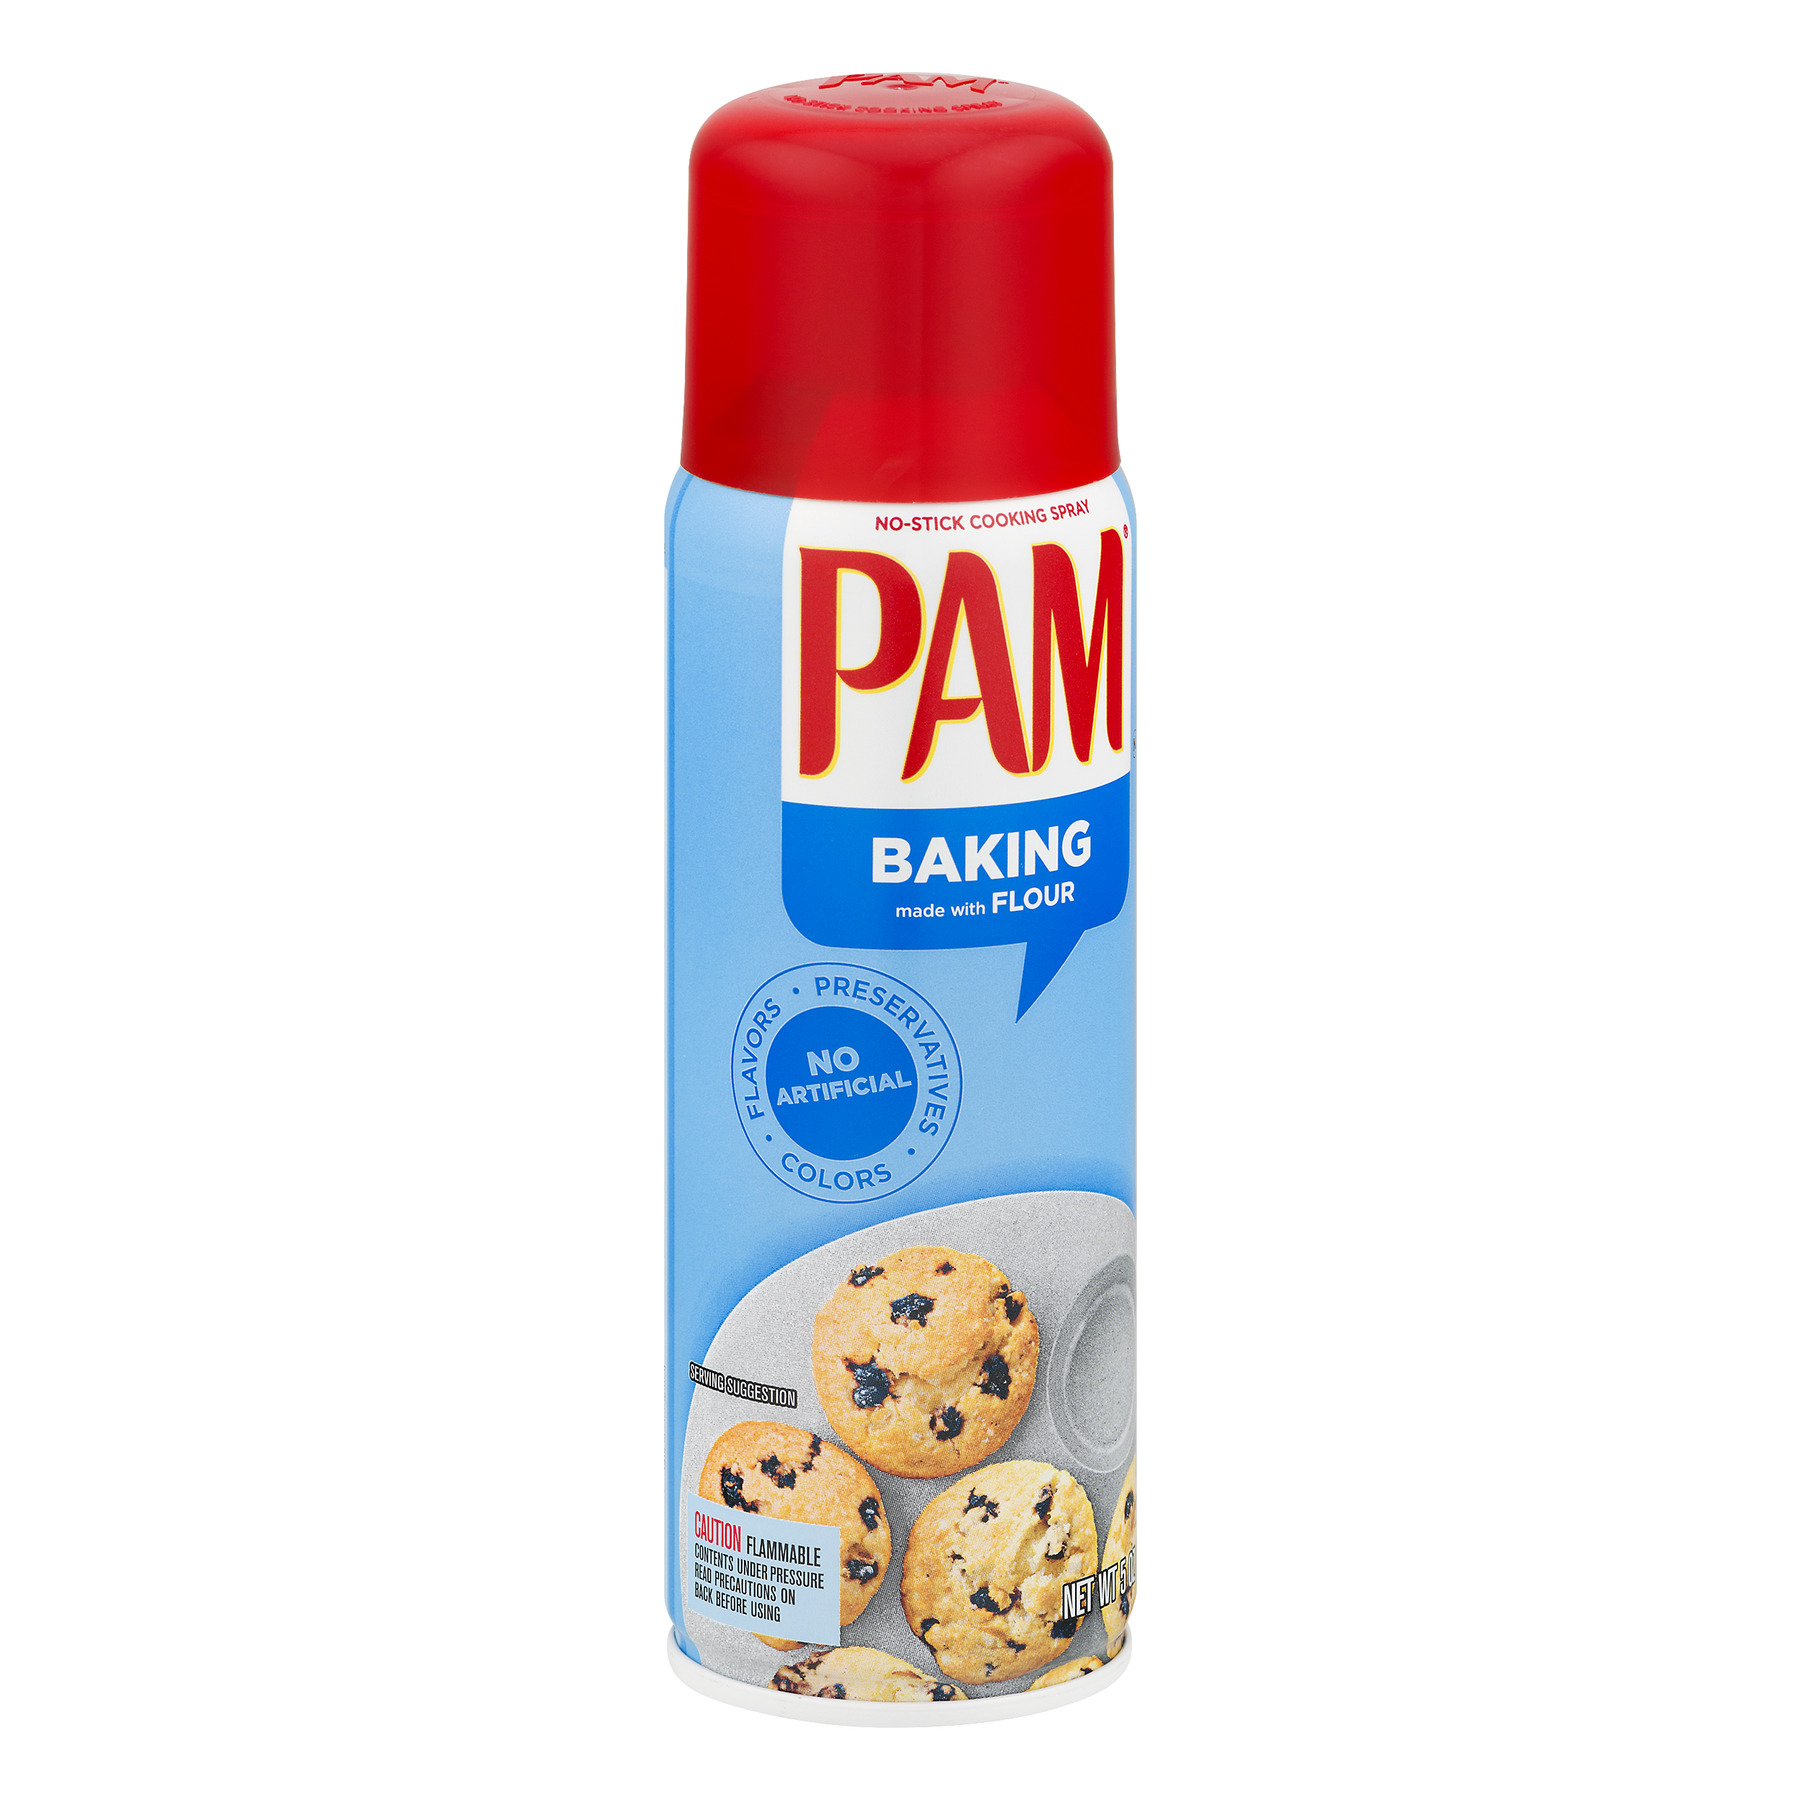 Pam Happy Baking No-Stick Cooking Spray, with Flour, 5 Oz - Walmart.com